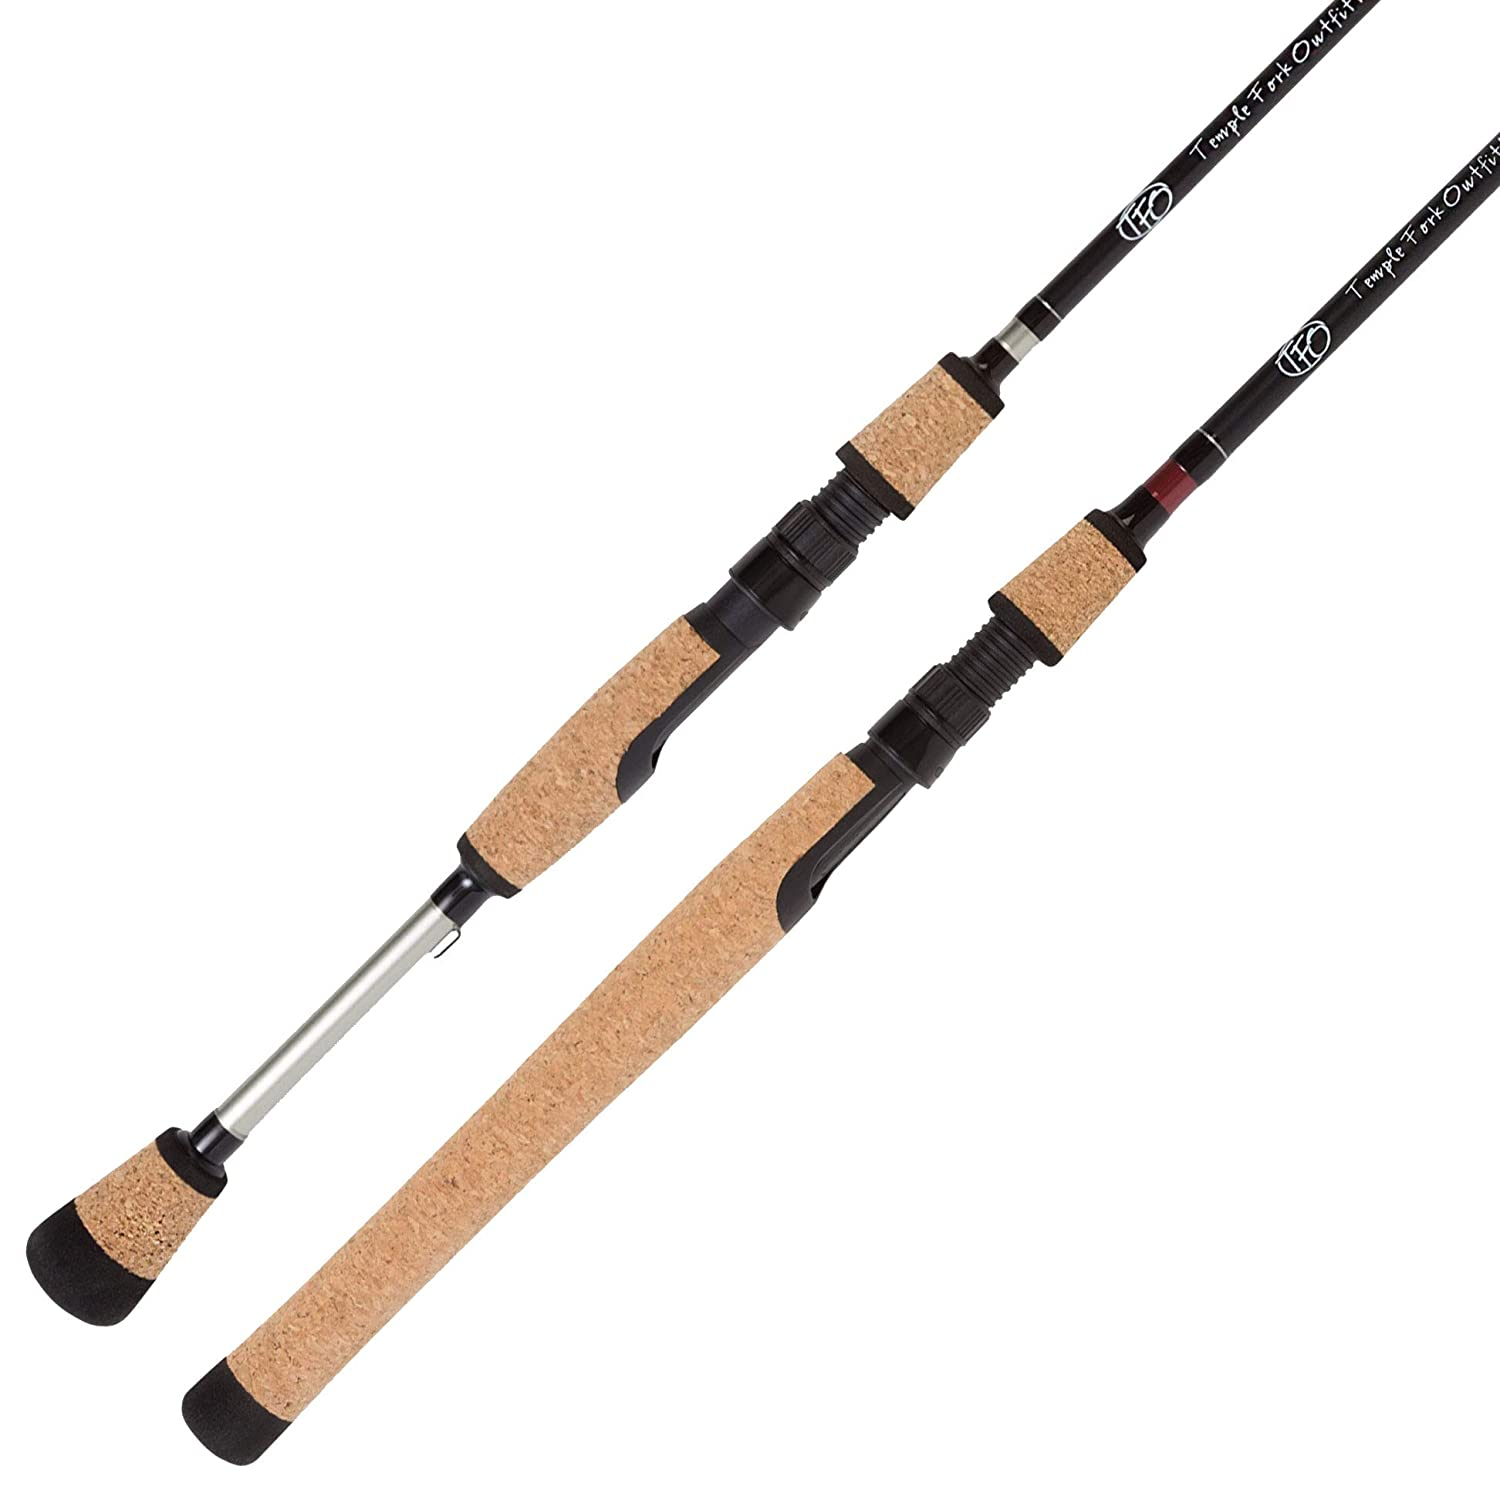 7 6 MH 1 pc. TFG w Fuji Guides Professional Spinning Rod